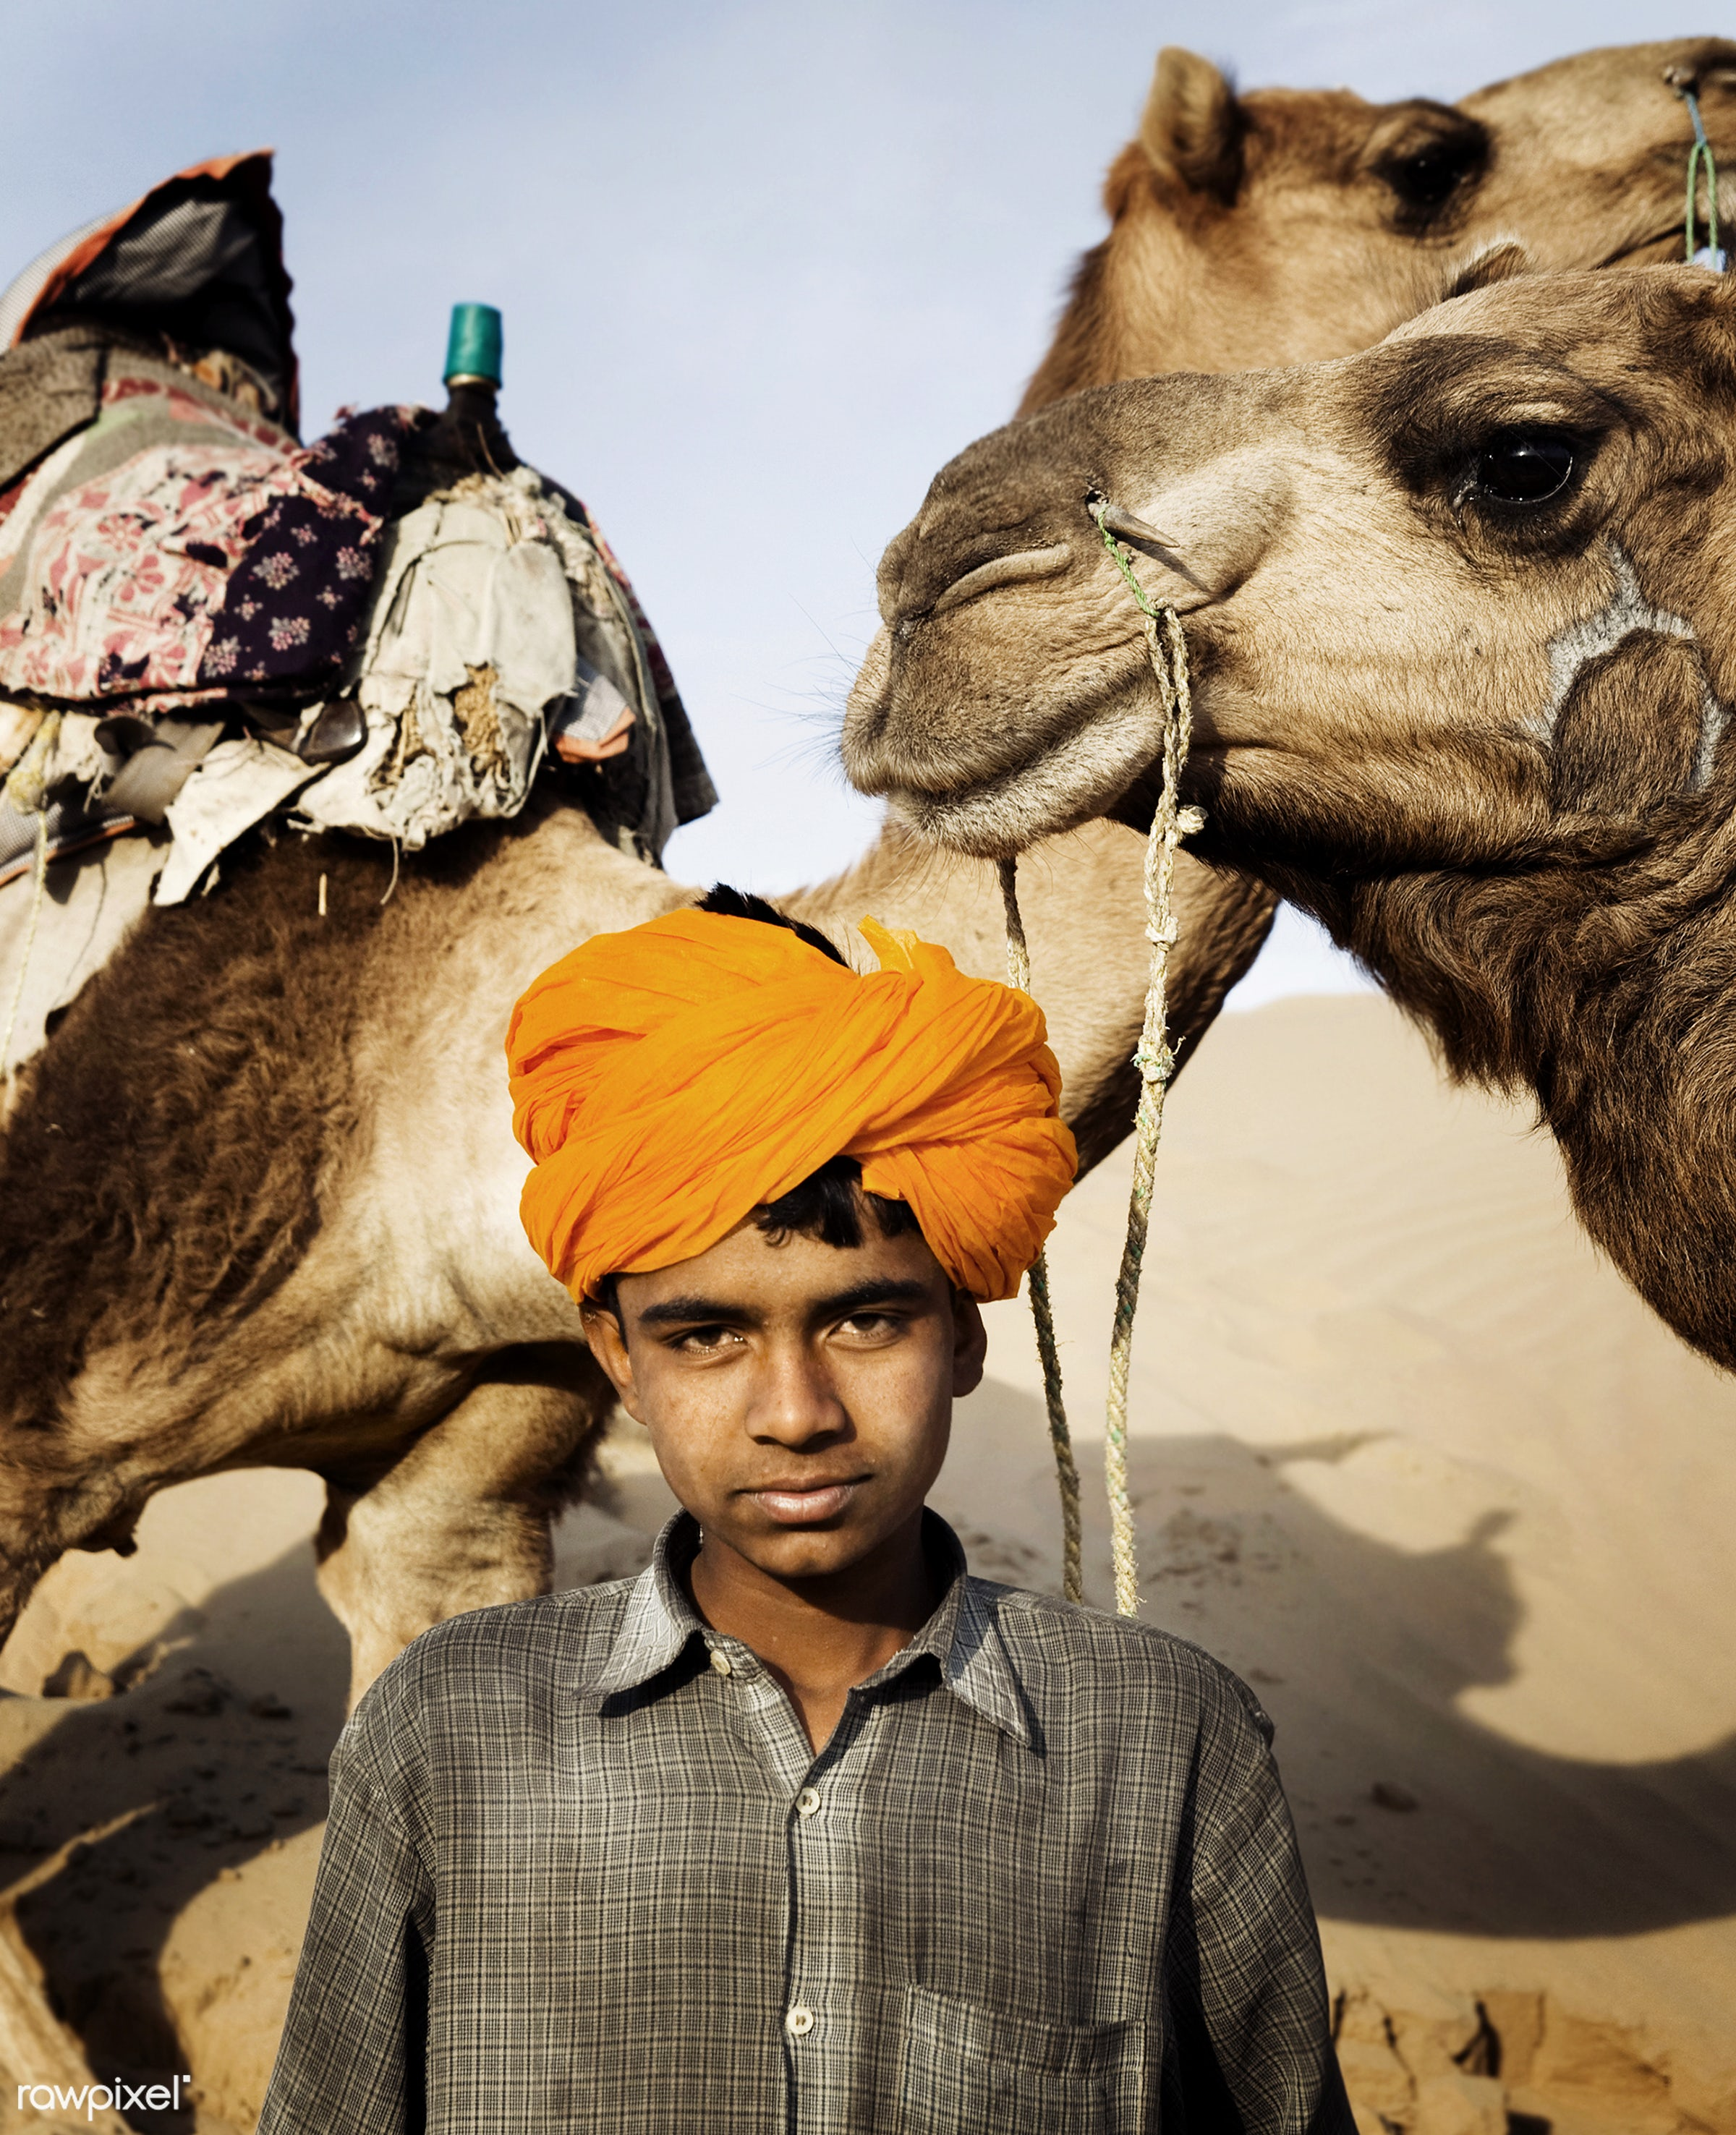 Indian boy with his camels - animal, asia, asian, boy, camel, countenance, desert, destination, expression, facial...